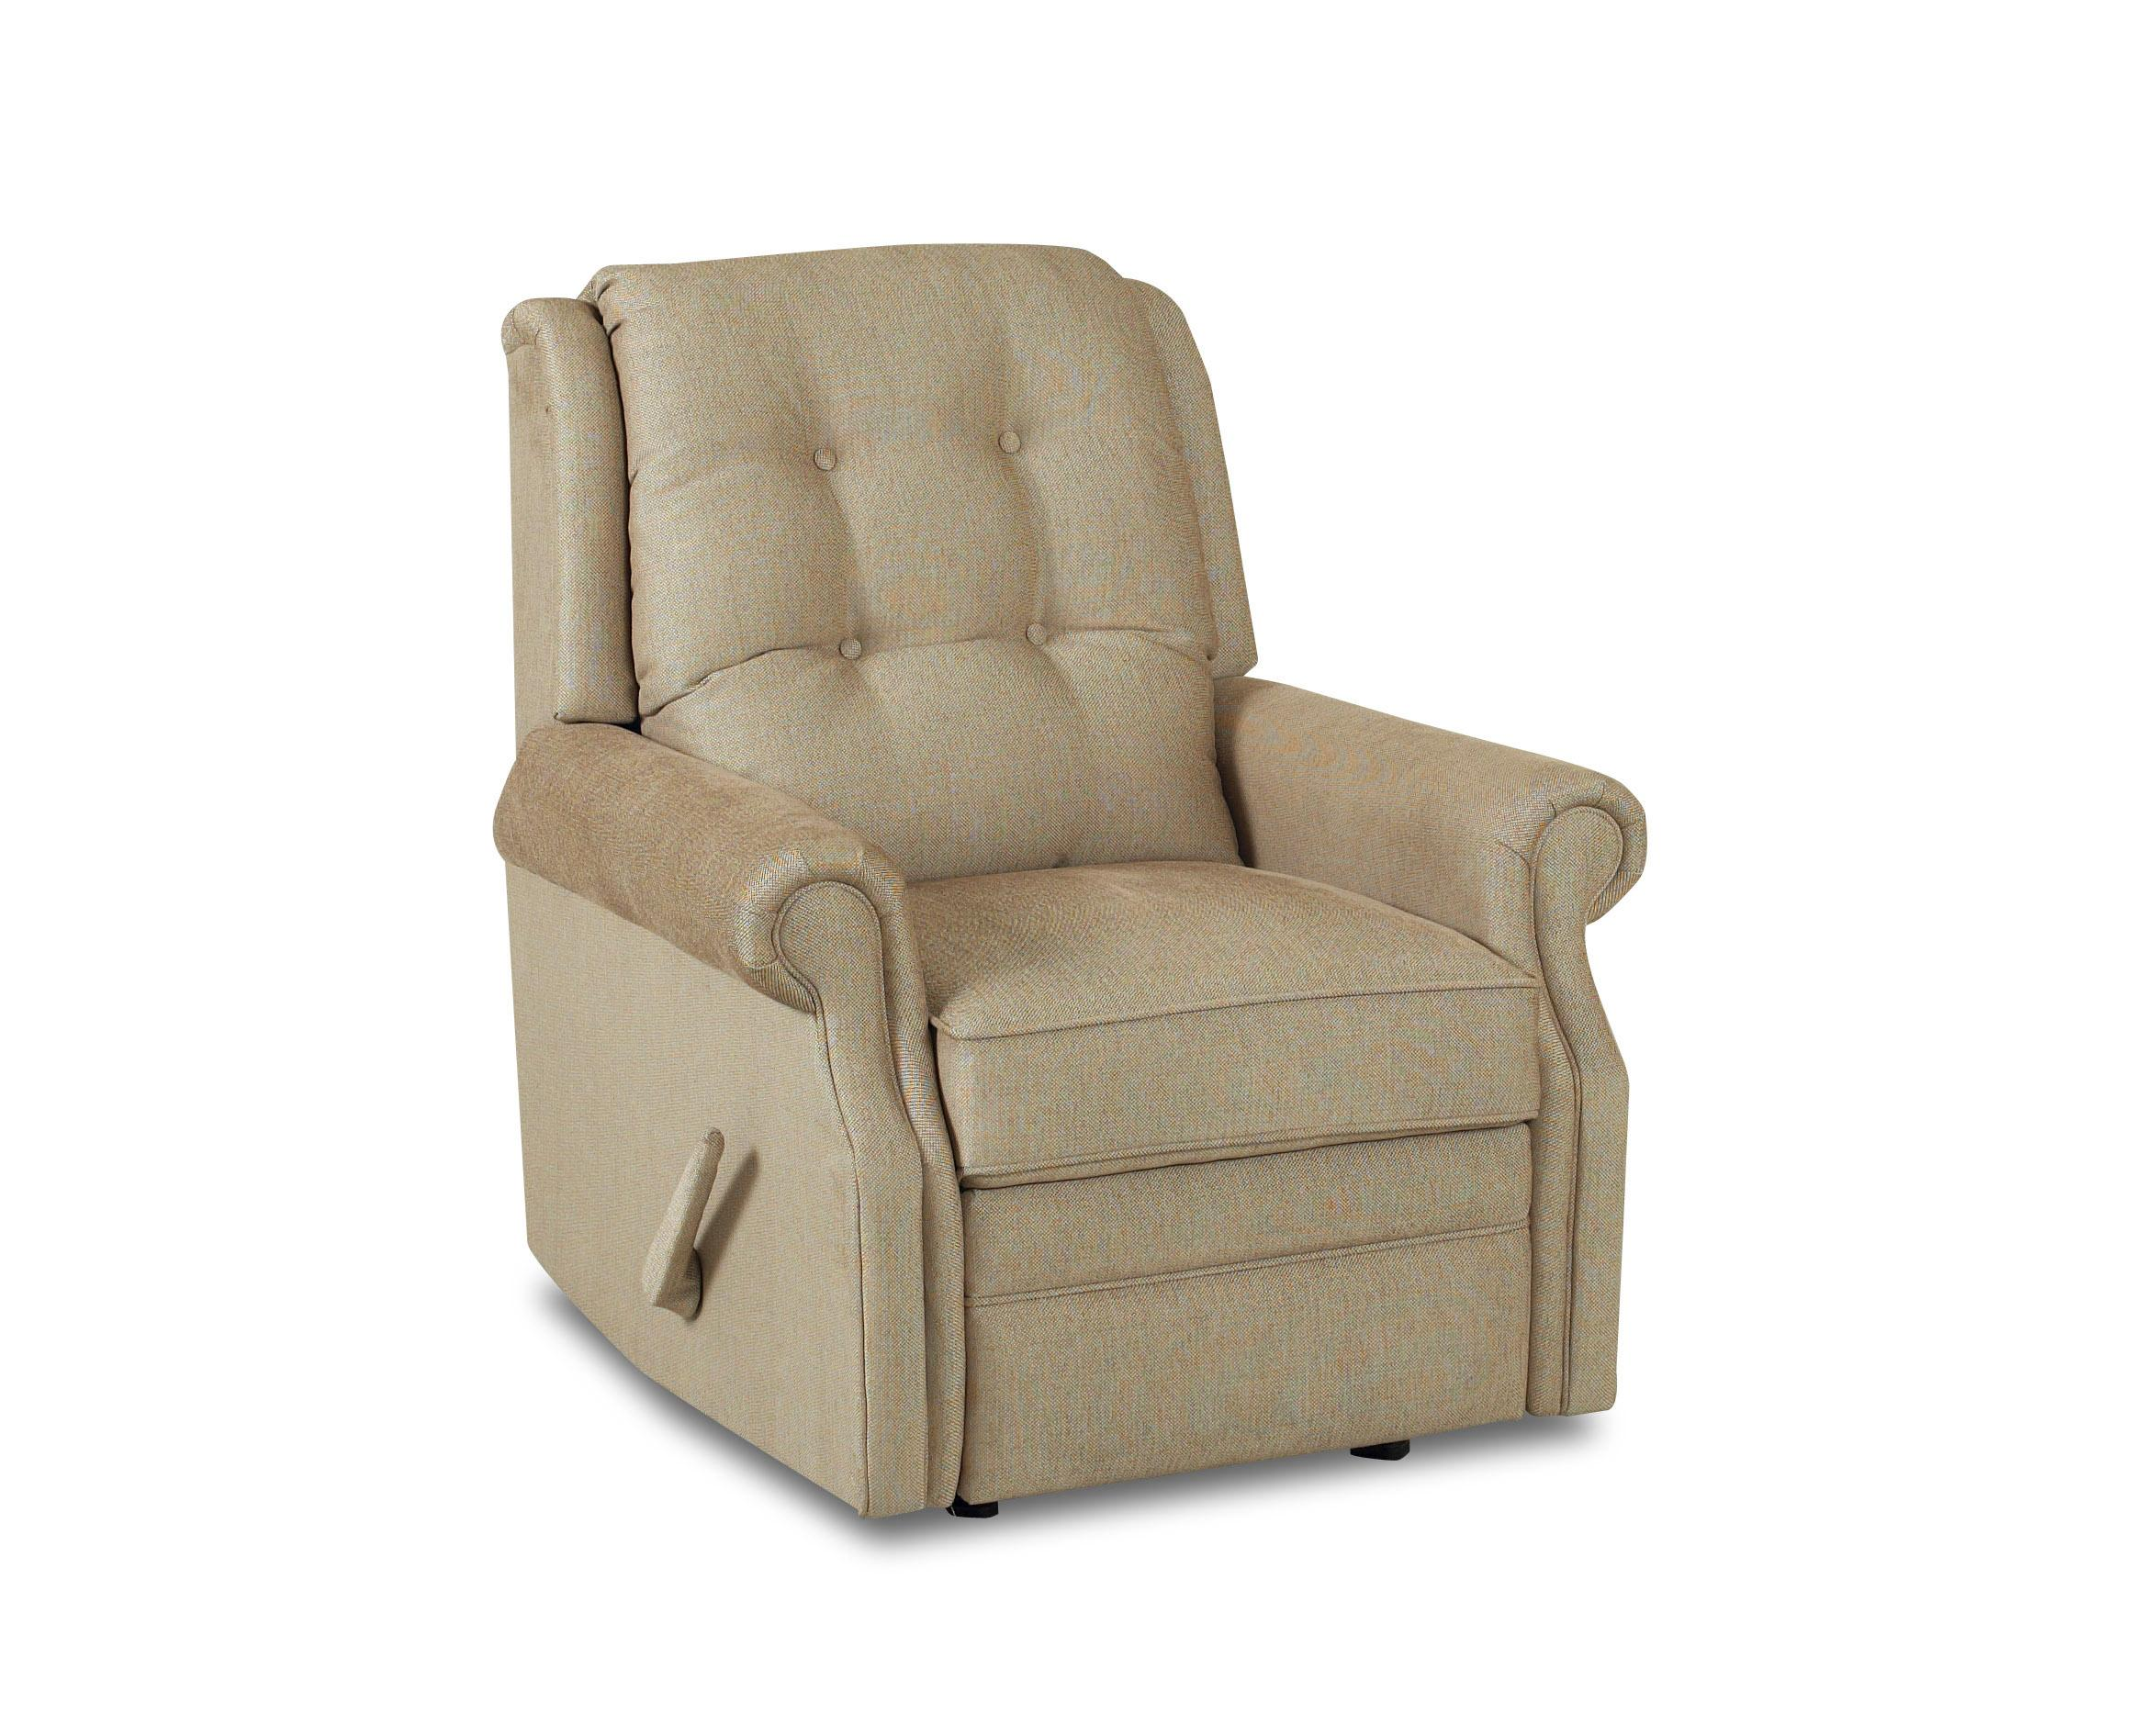 rocking reclining chair shower walgreens transitional manual swivel with